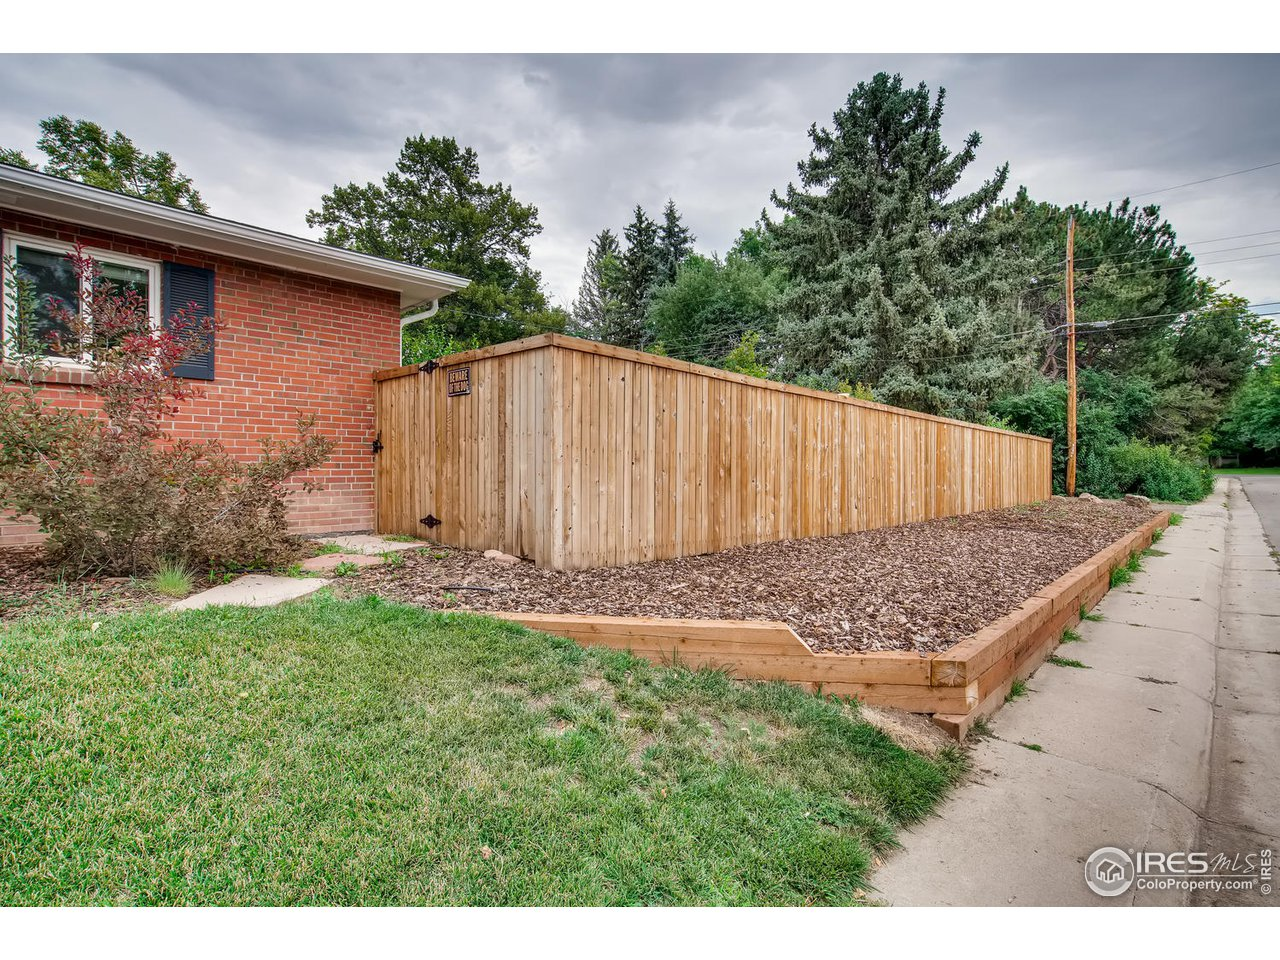 Retaining wall with irrigated garden bed